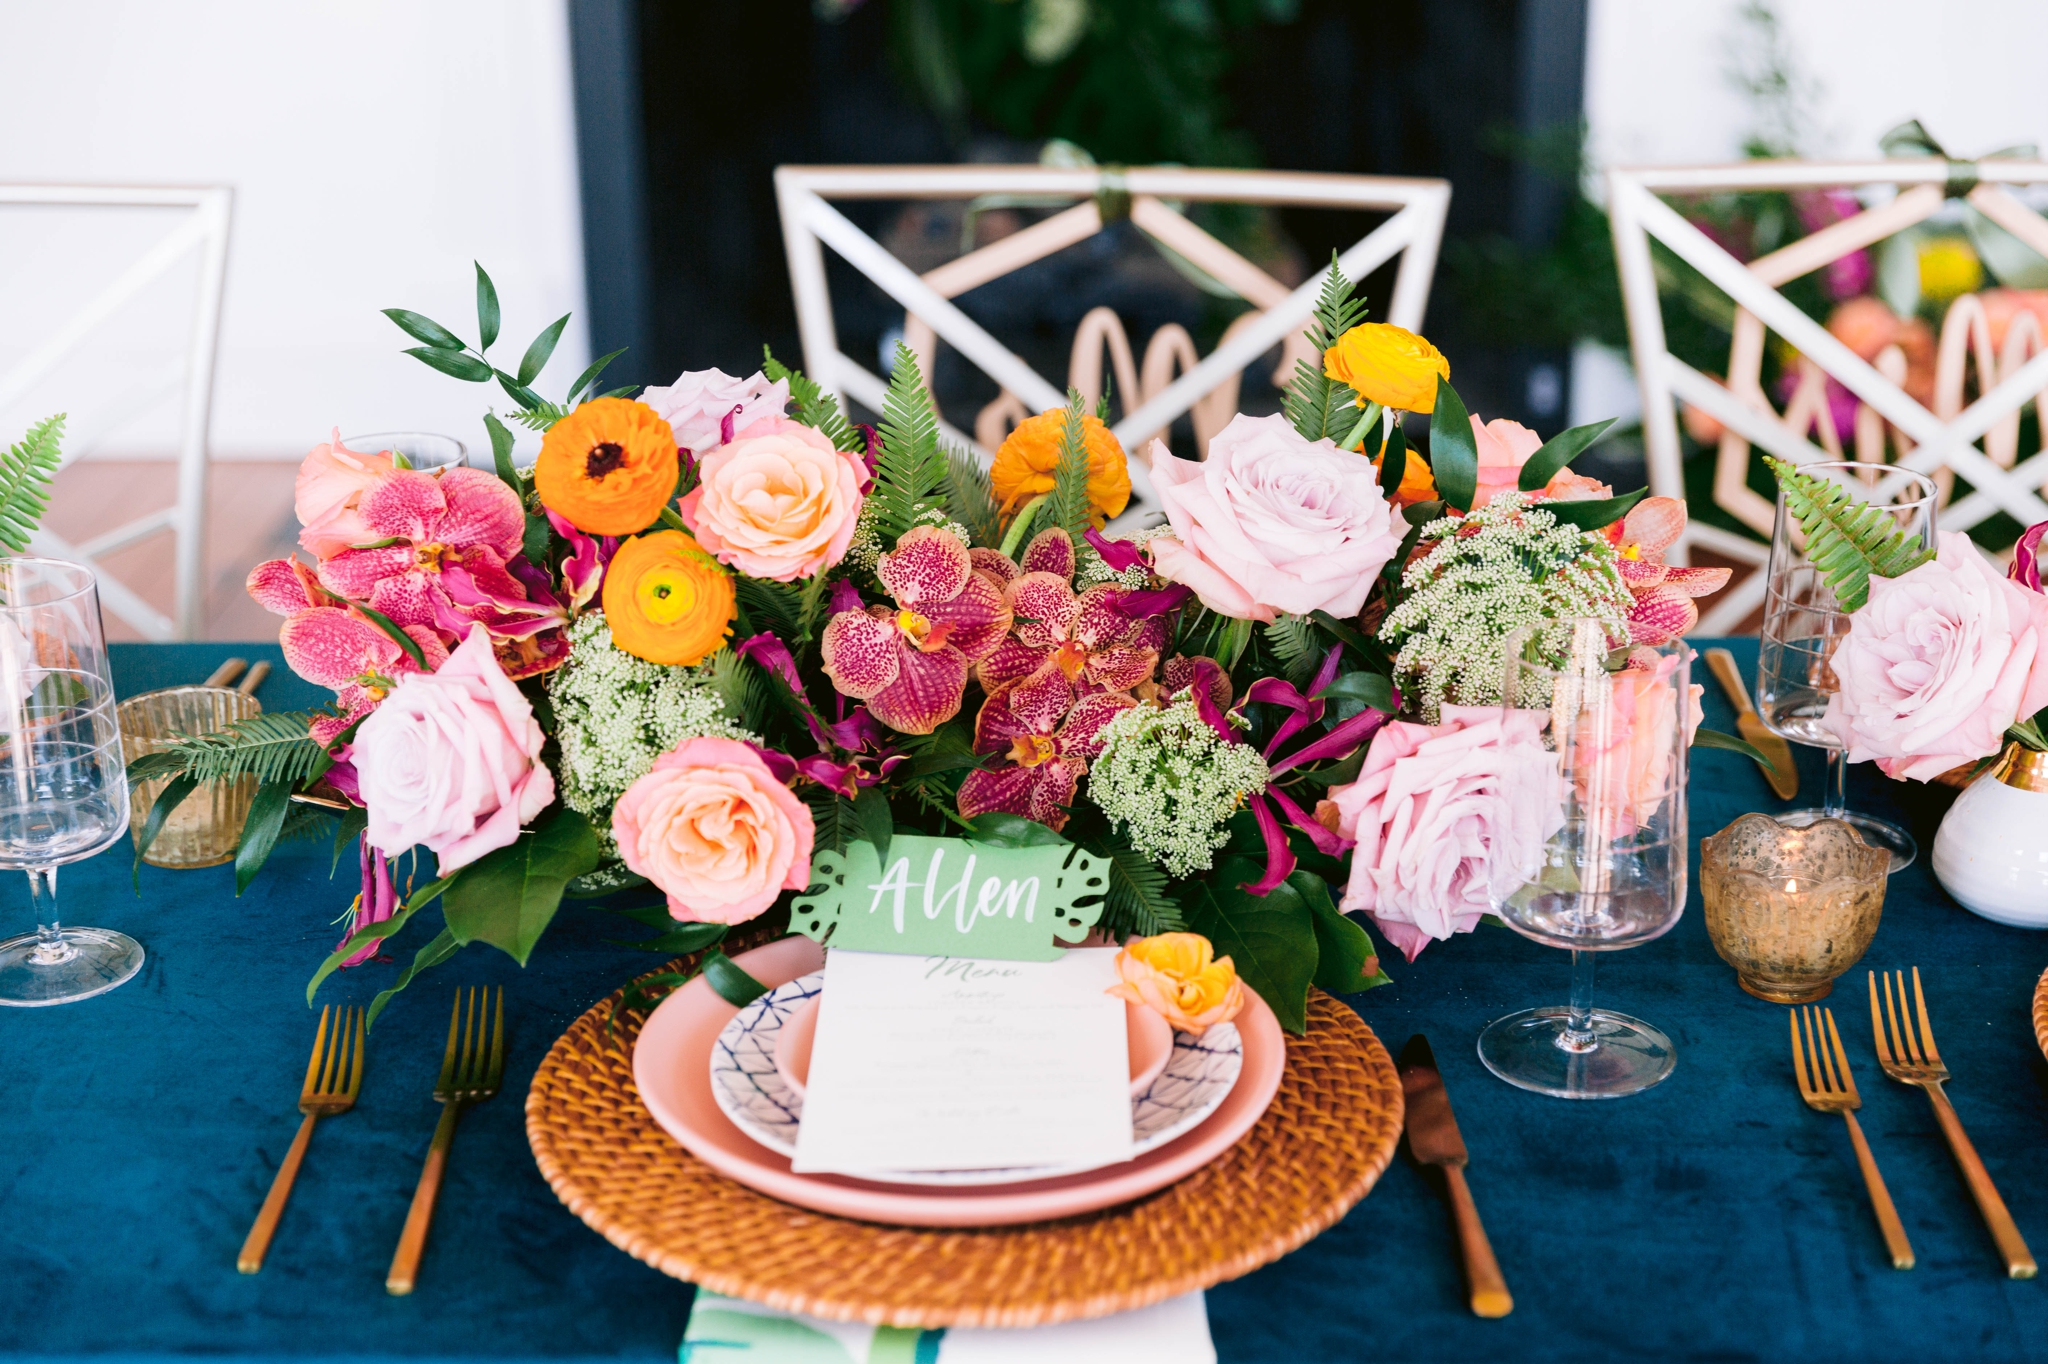 Navy, Green, Gold and Berry colored Tropical Wedding Inspiration for your Wedding in Hawaii! - Honolulu, Oahu, Hawaii Photographer